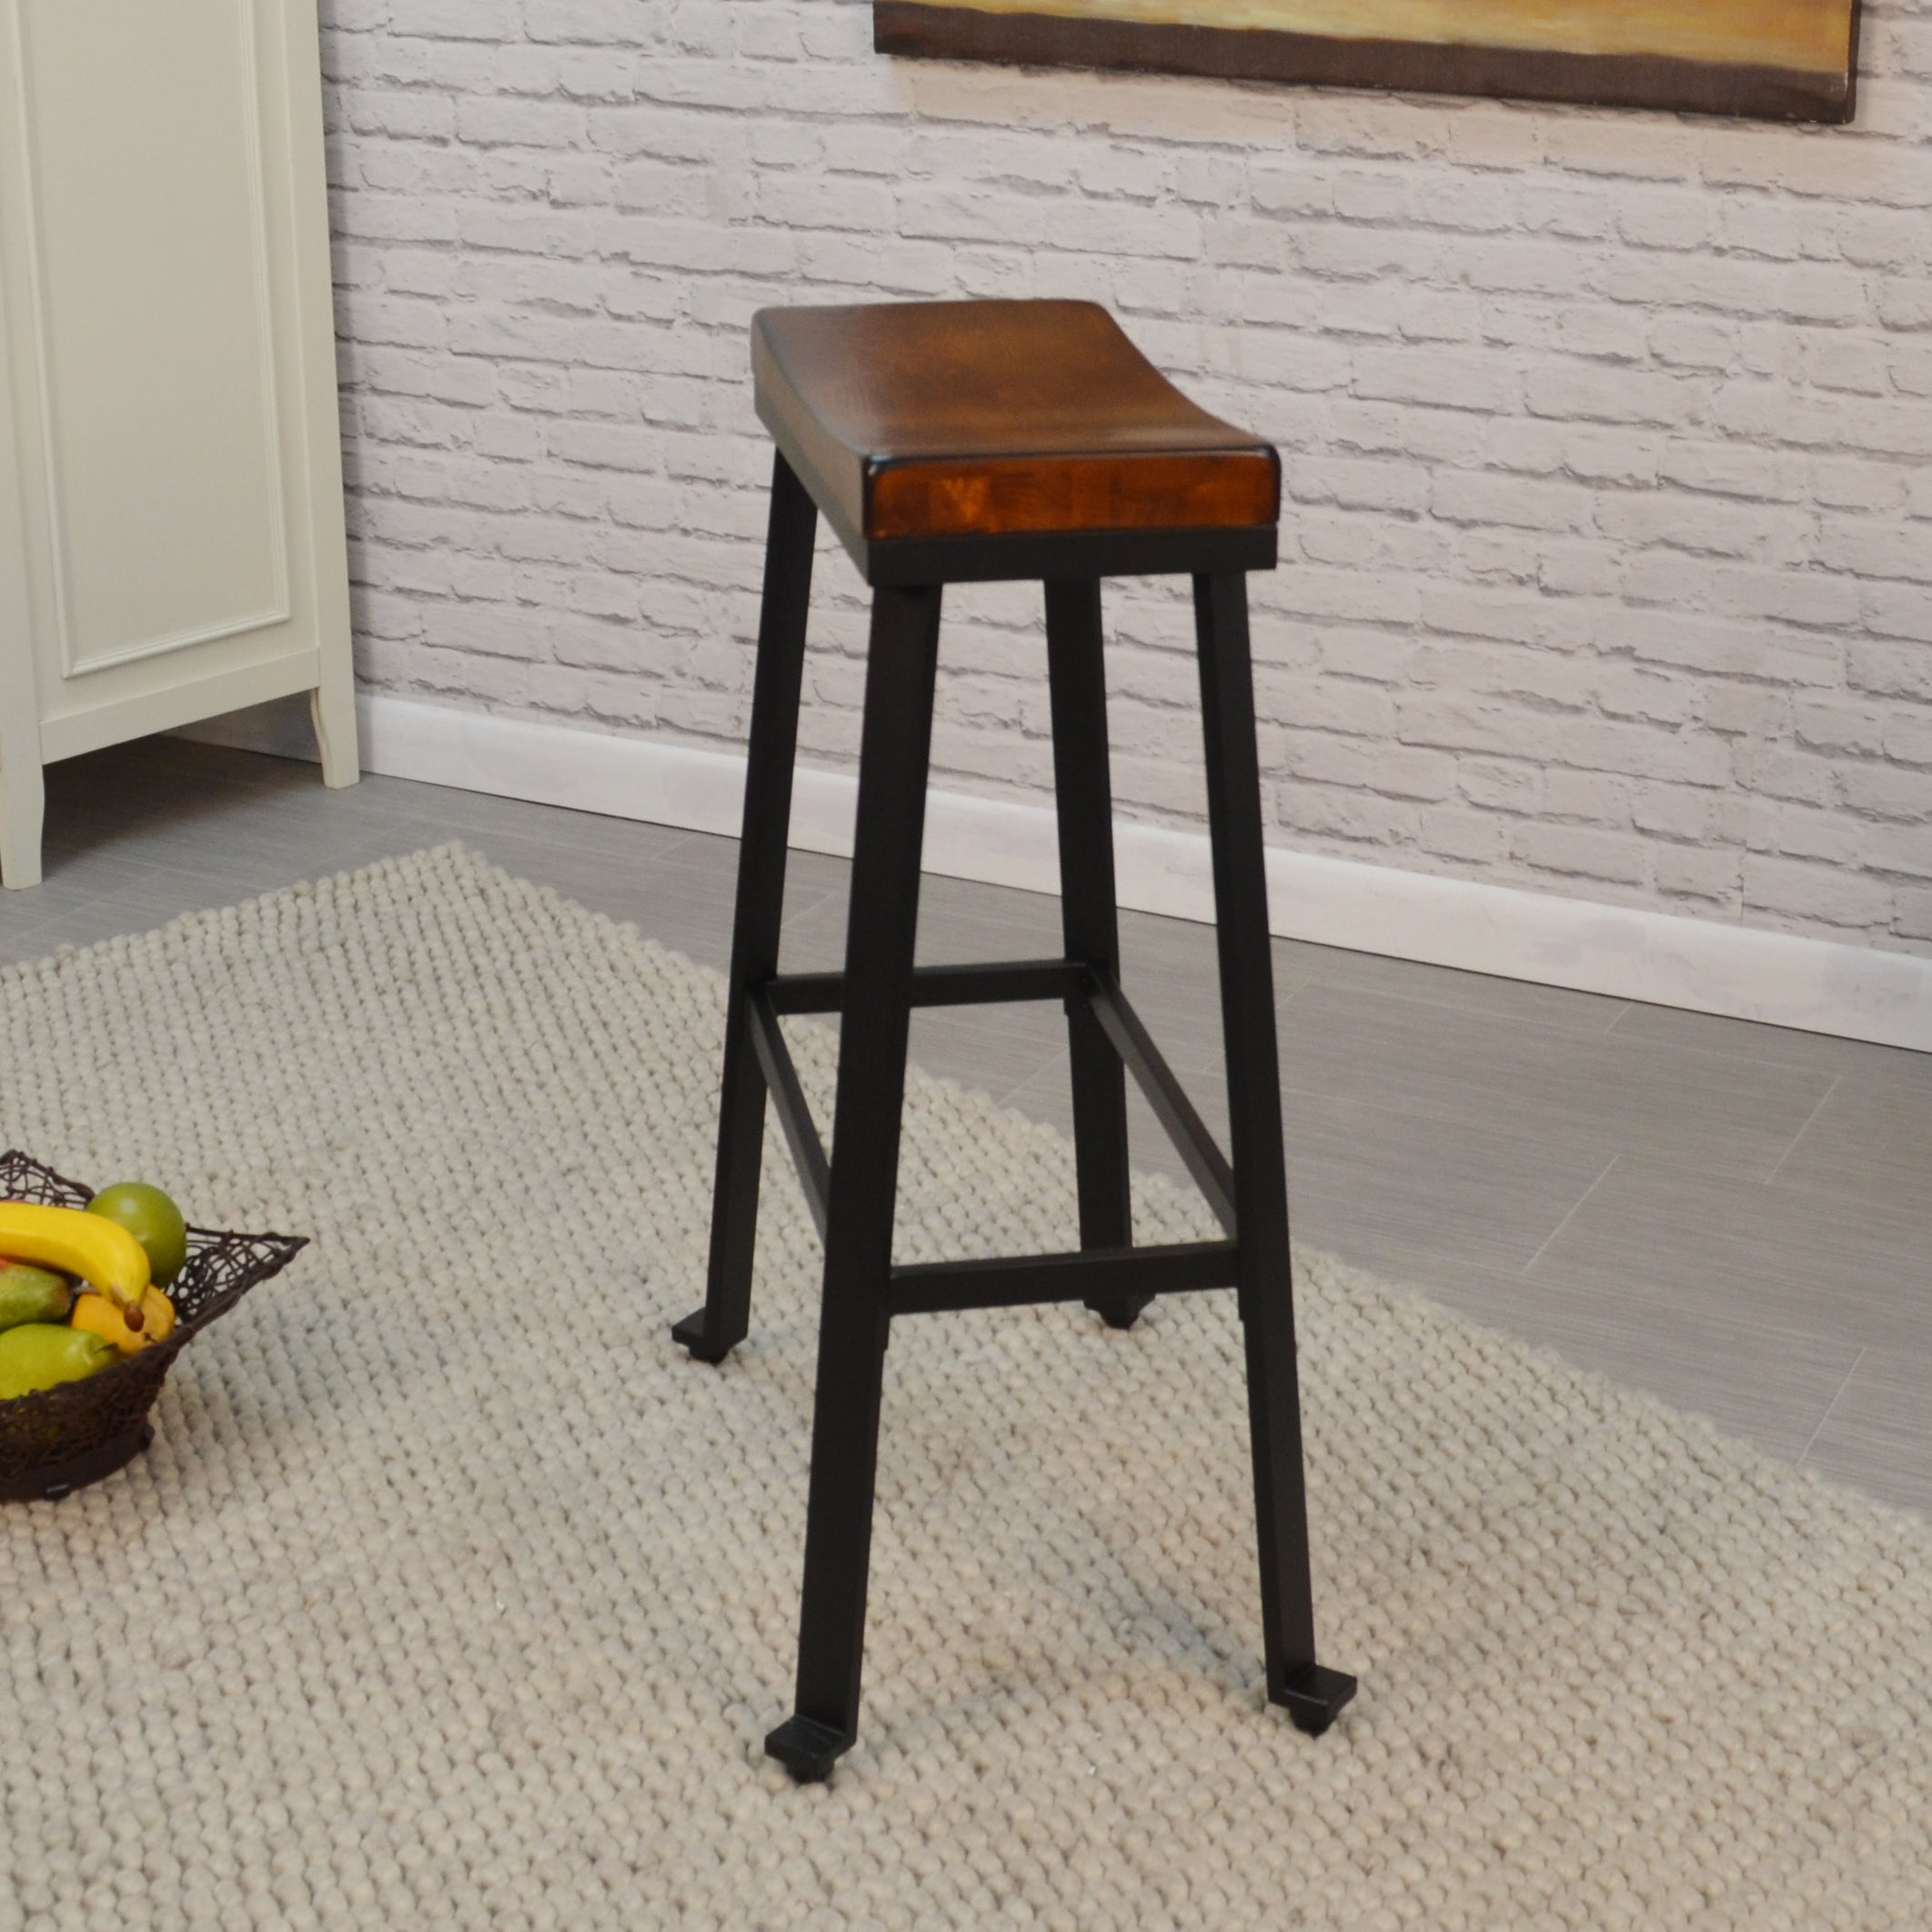 stools design free today counter shipping stool set brown seat height nailhead dining product saddle with overstock home trim of garden